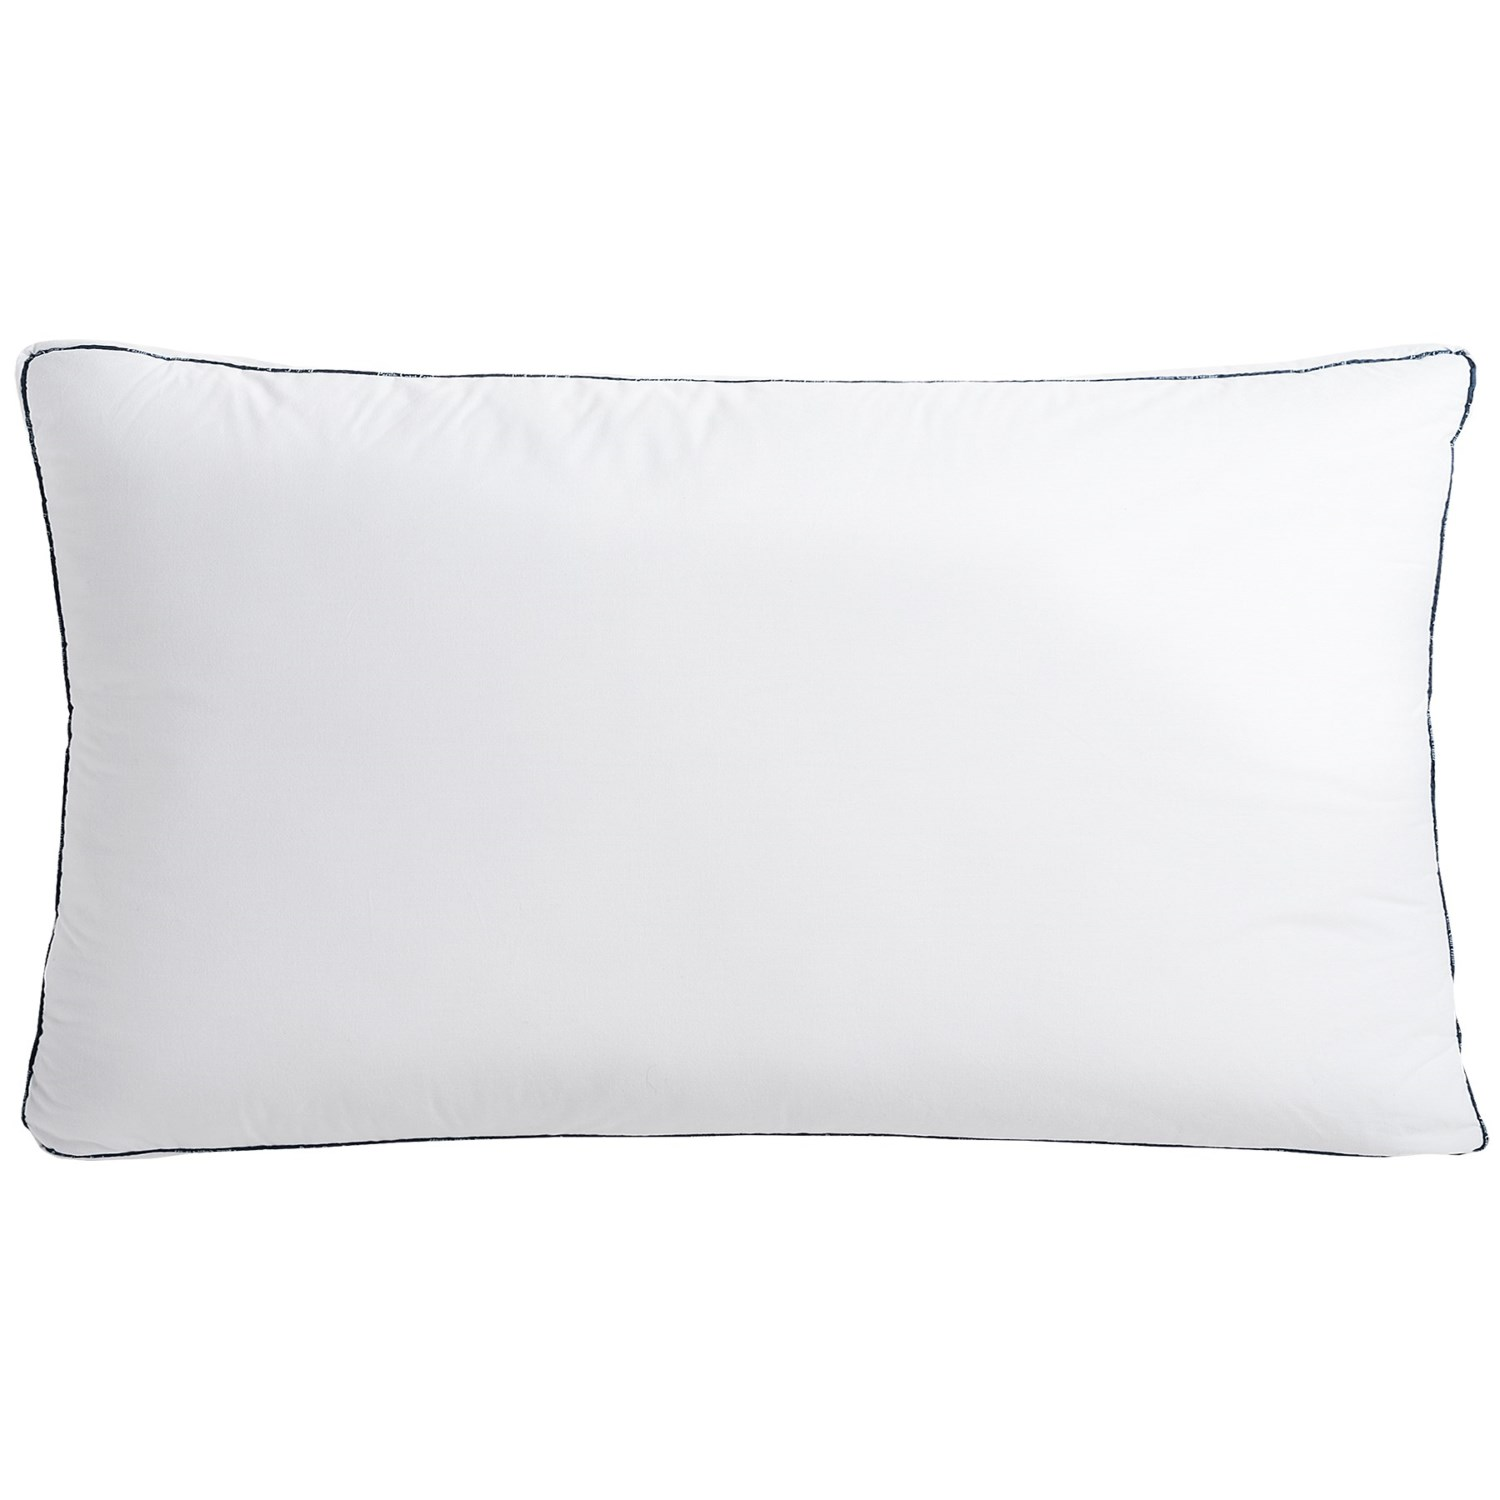 Pacific Coast Feather pany Feather Best Gusset Pillow King